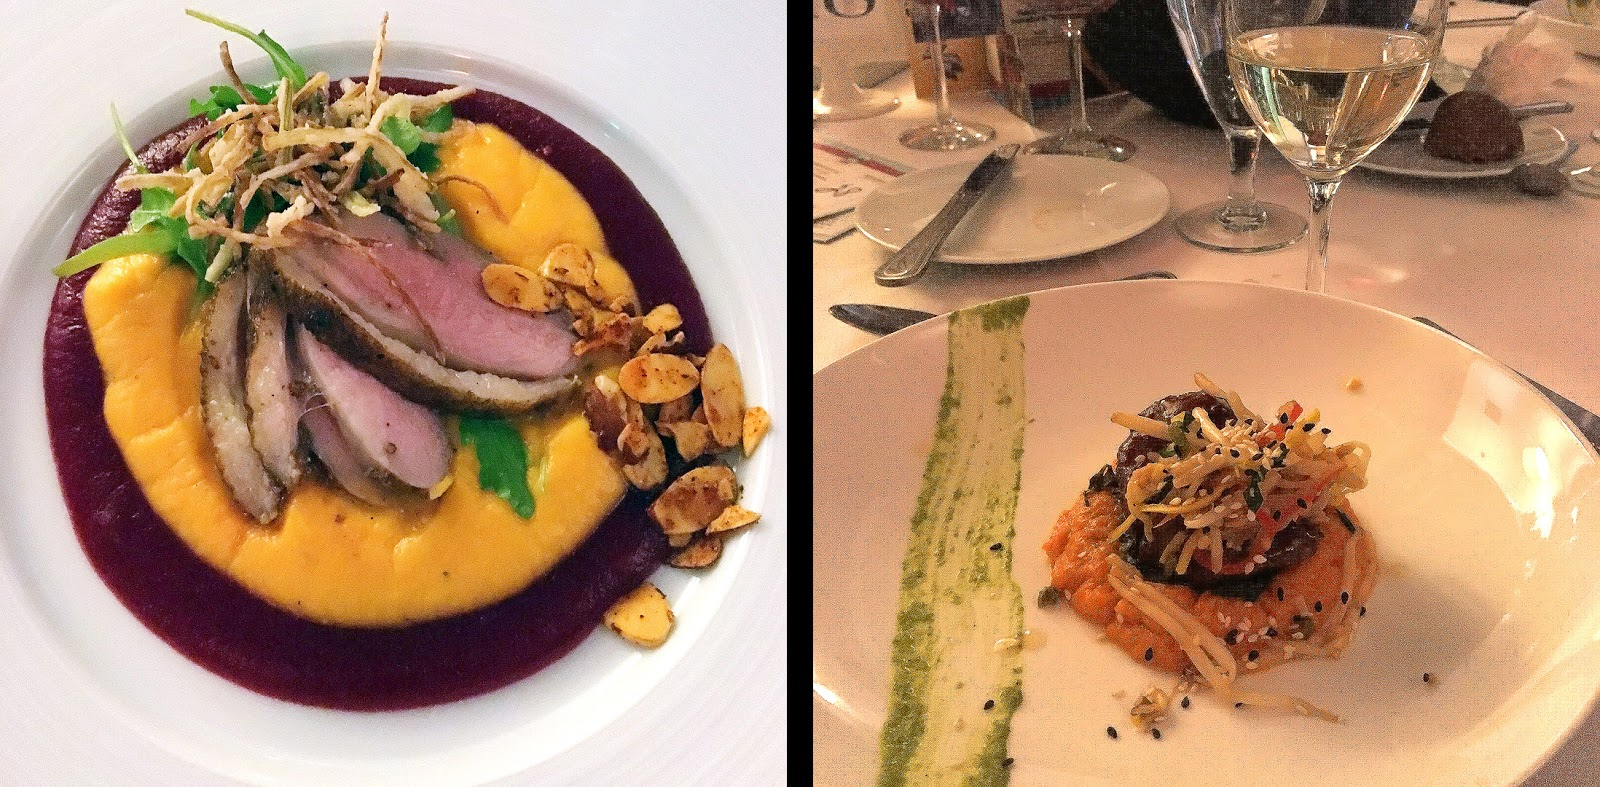 Duck breast with sweet potato and beet puree and braised pork with slaw and sweet potato.